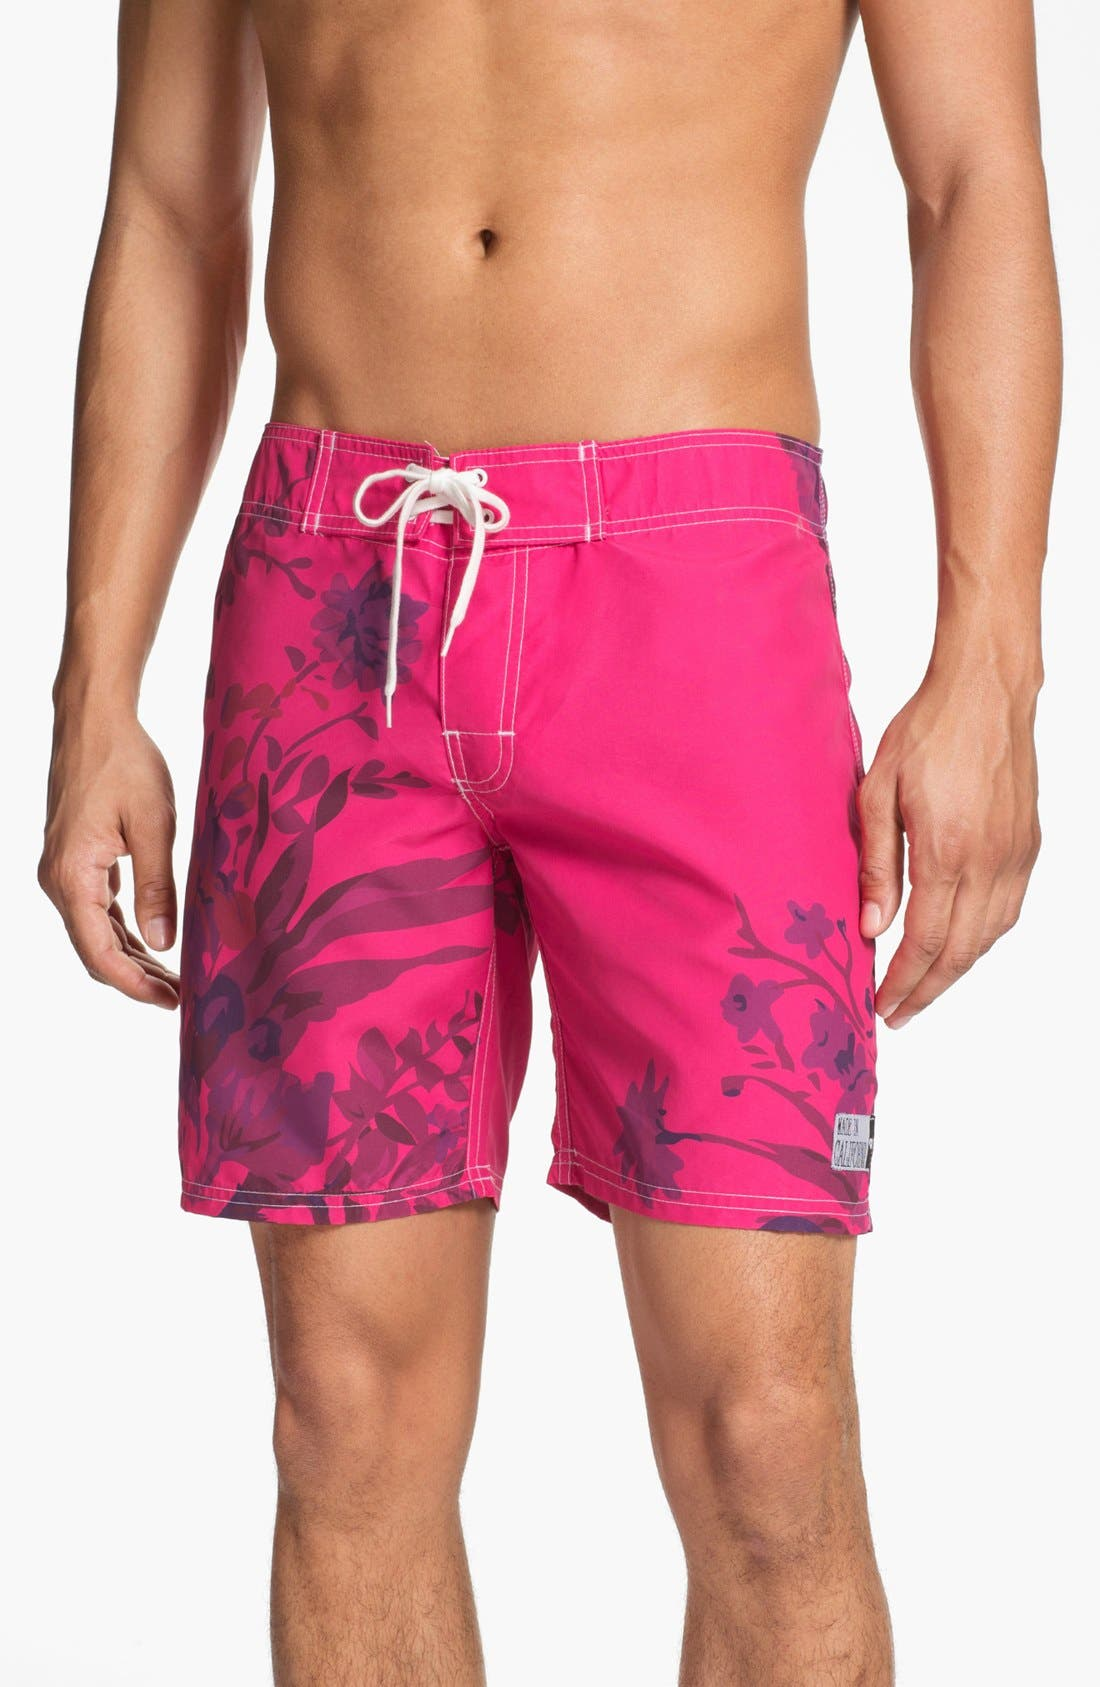 Main Image - ambsn 'Trudy' Board Shorts